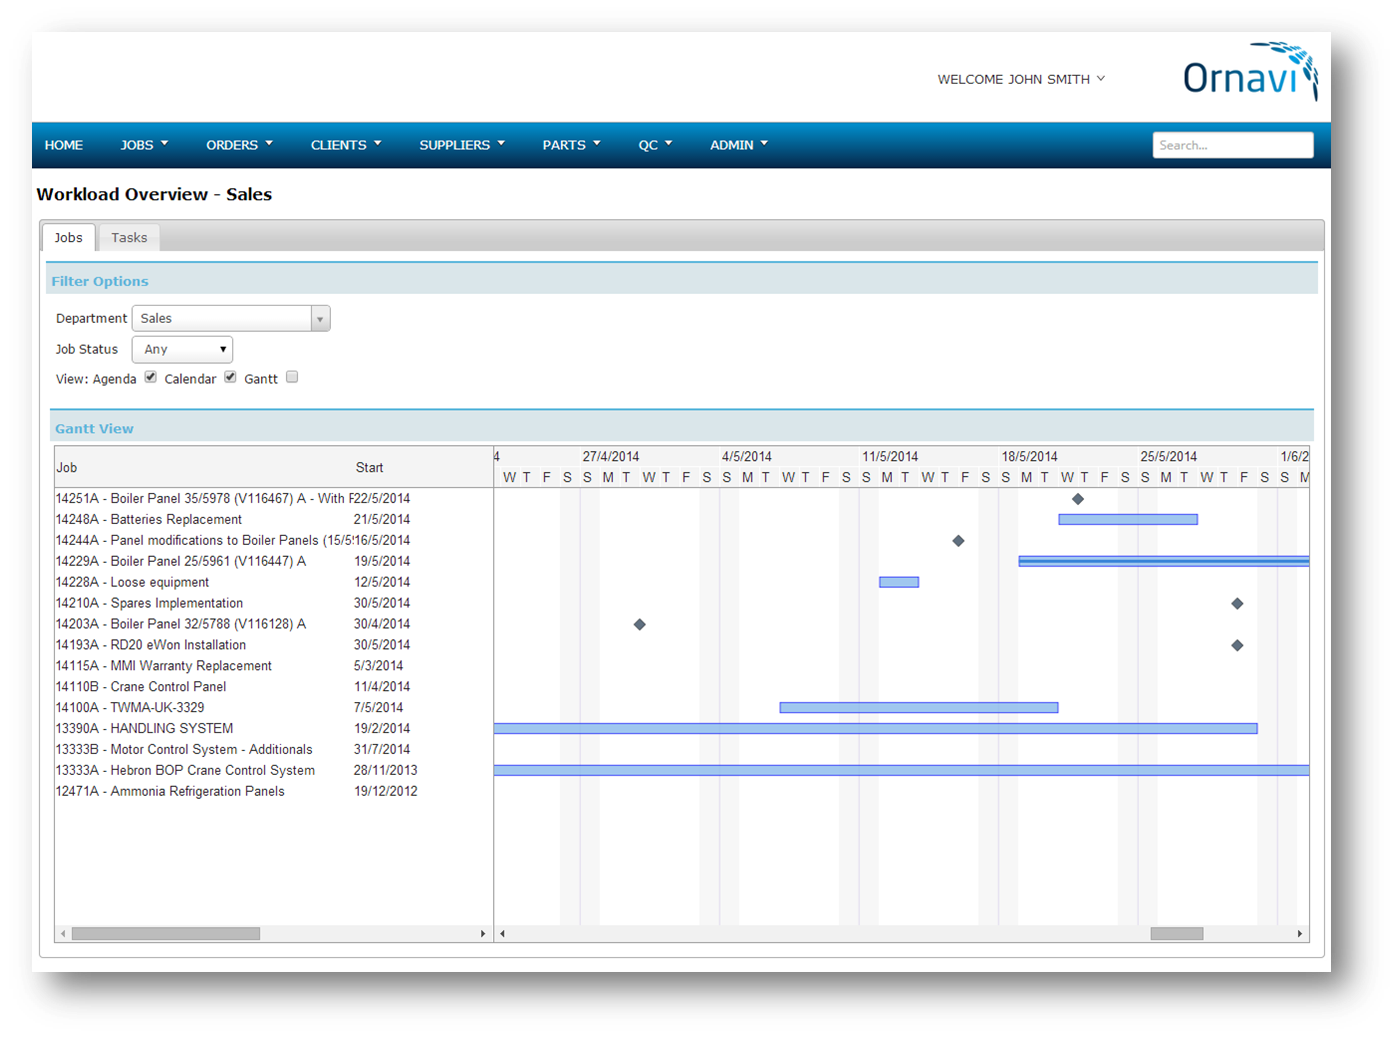 Ornavi Screenshot - Time Management Gantt Chart